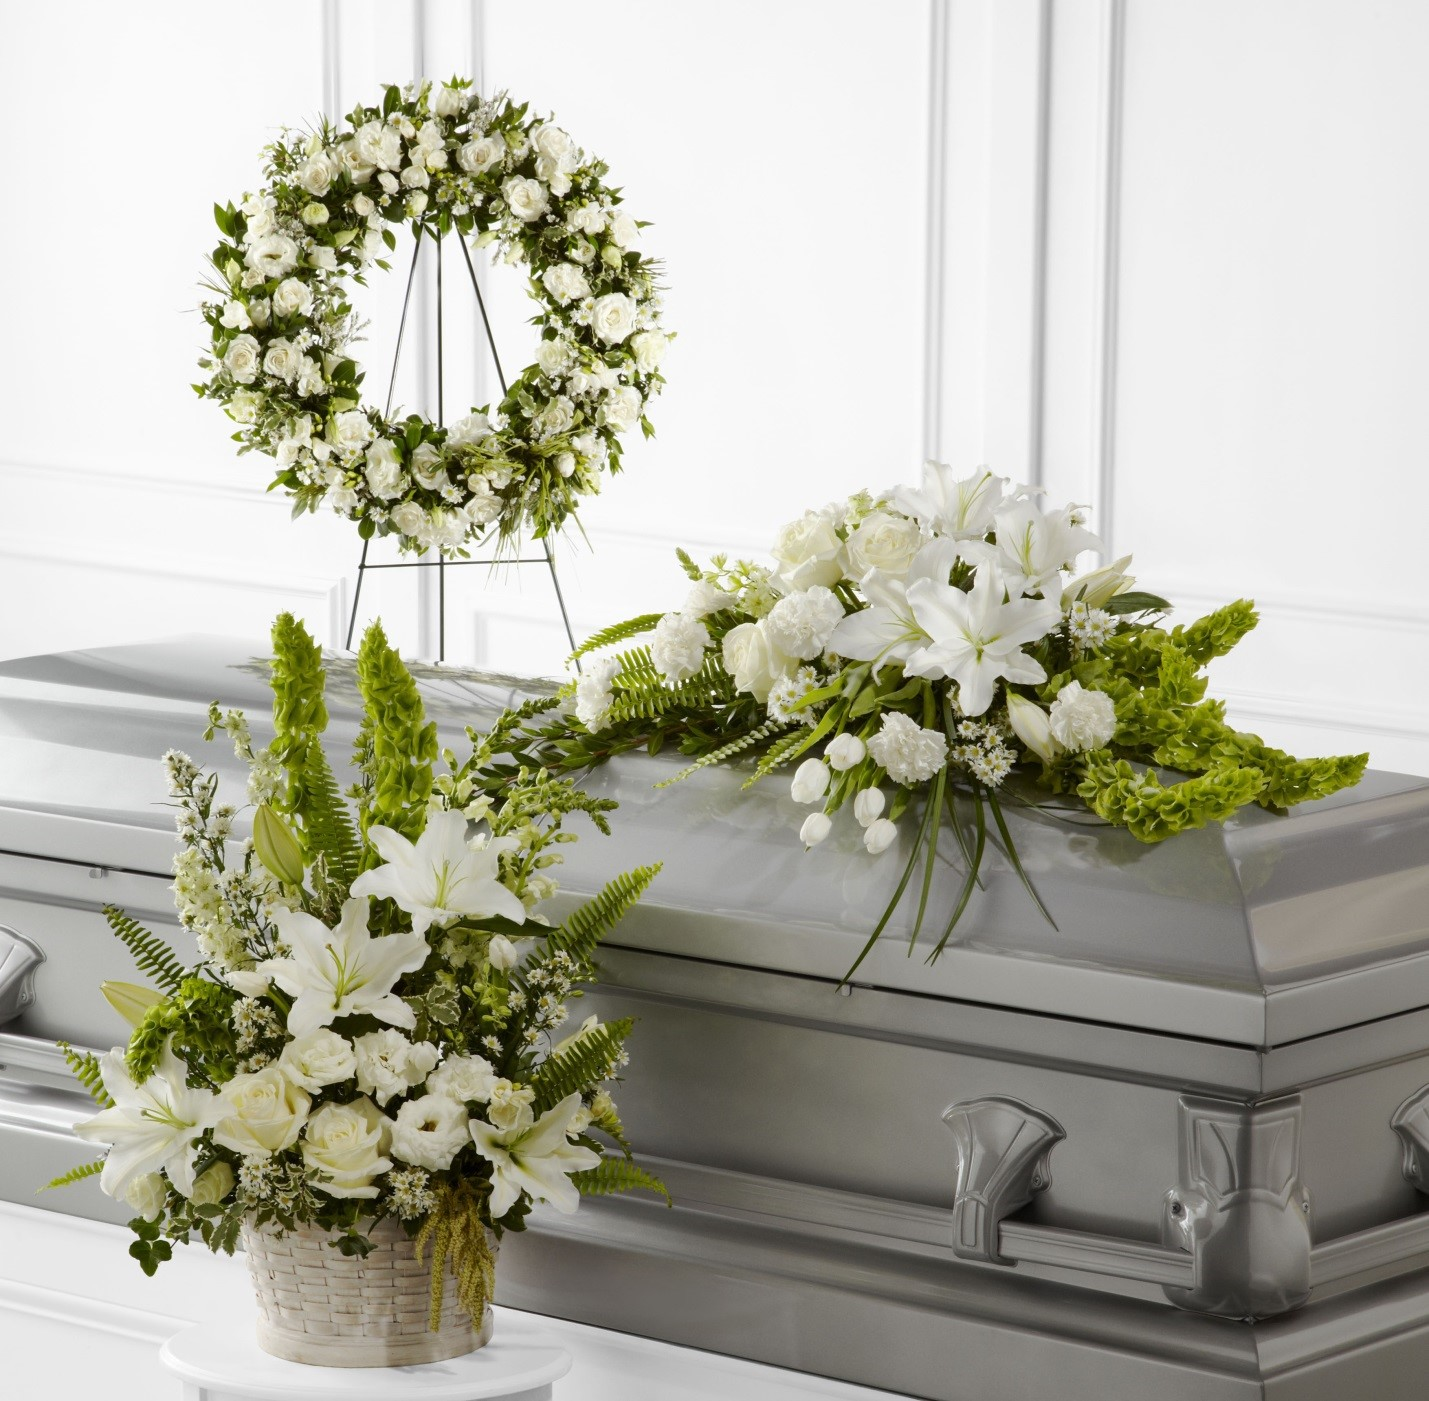 Handling-Of-Cemetery-And-Funeral-Practices